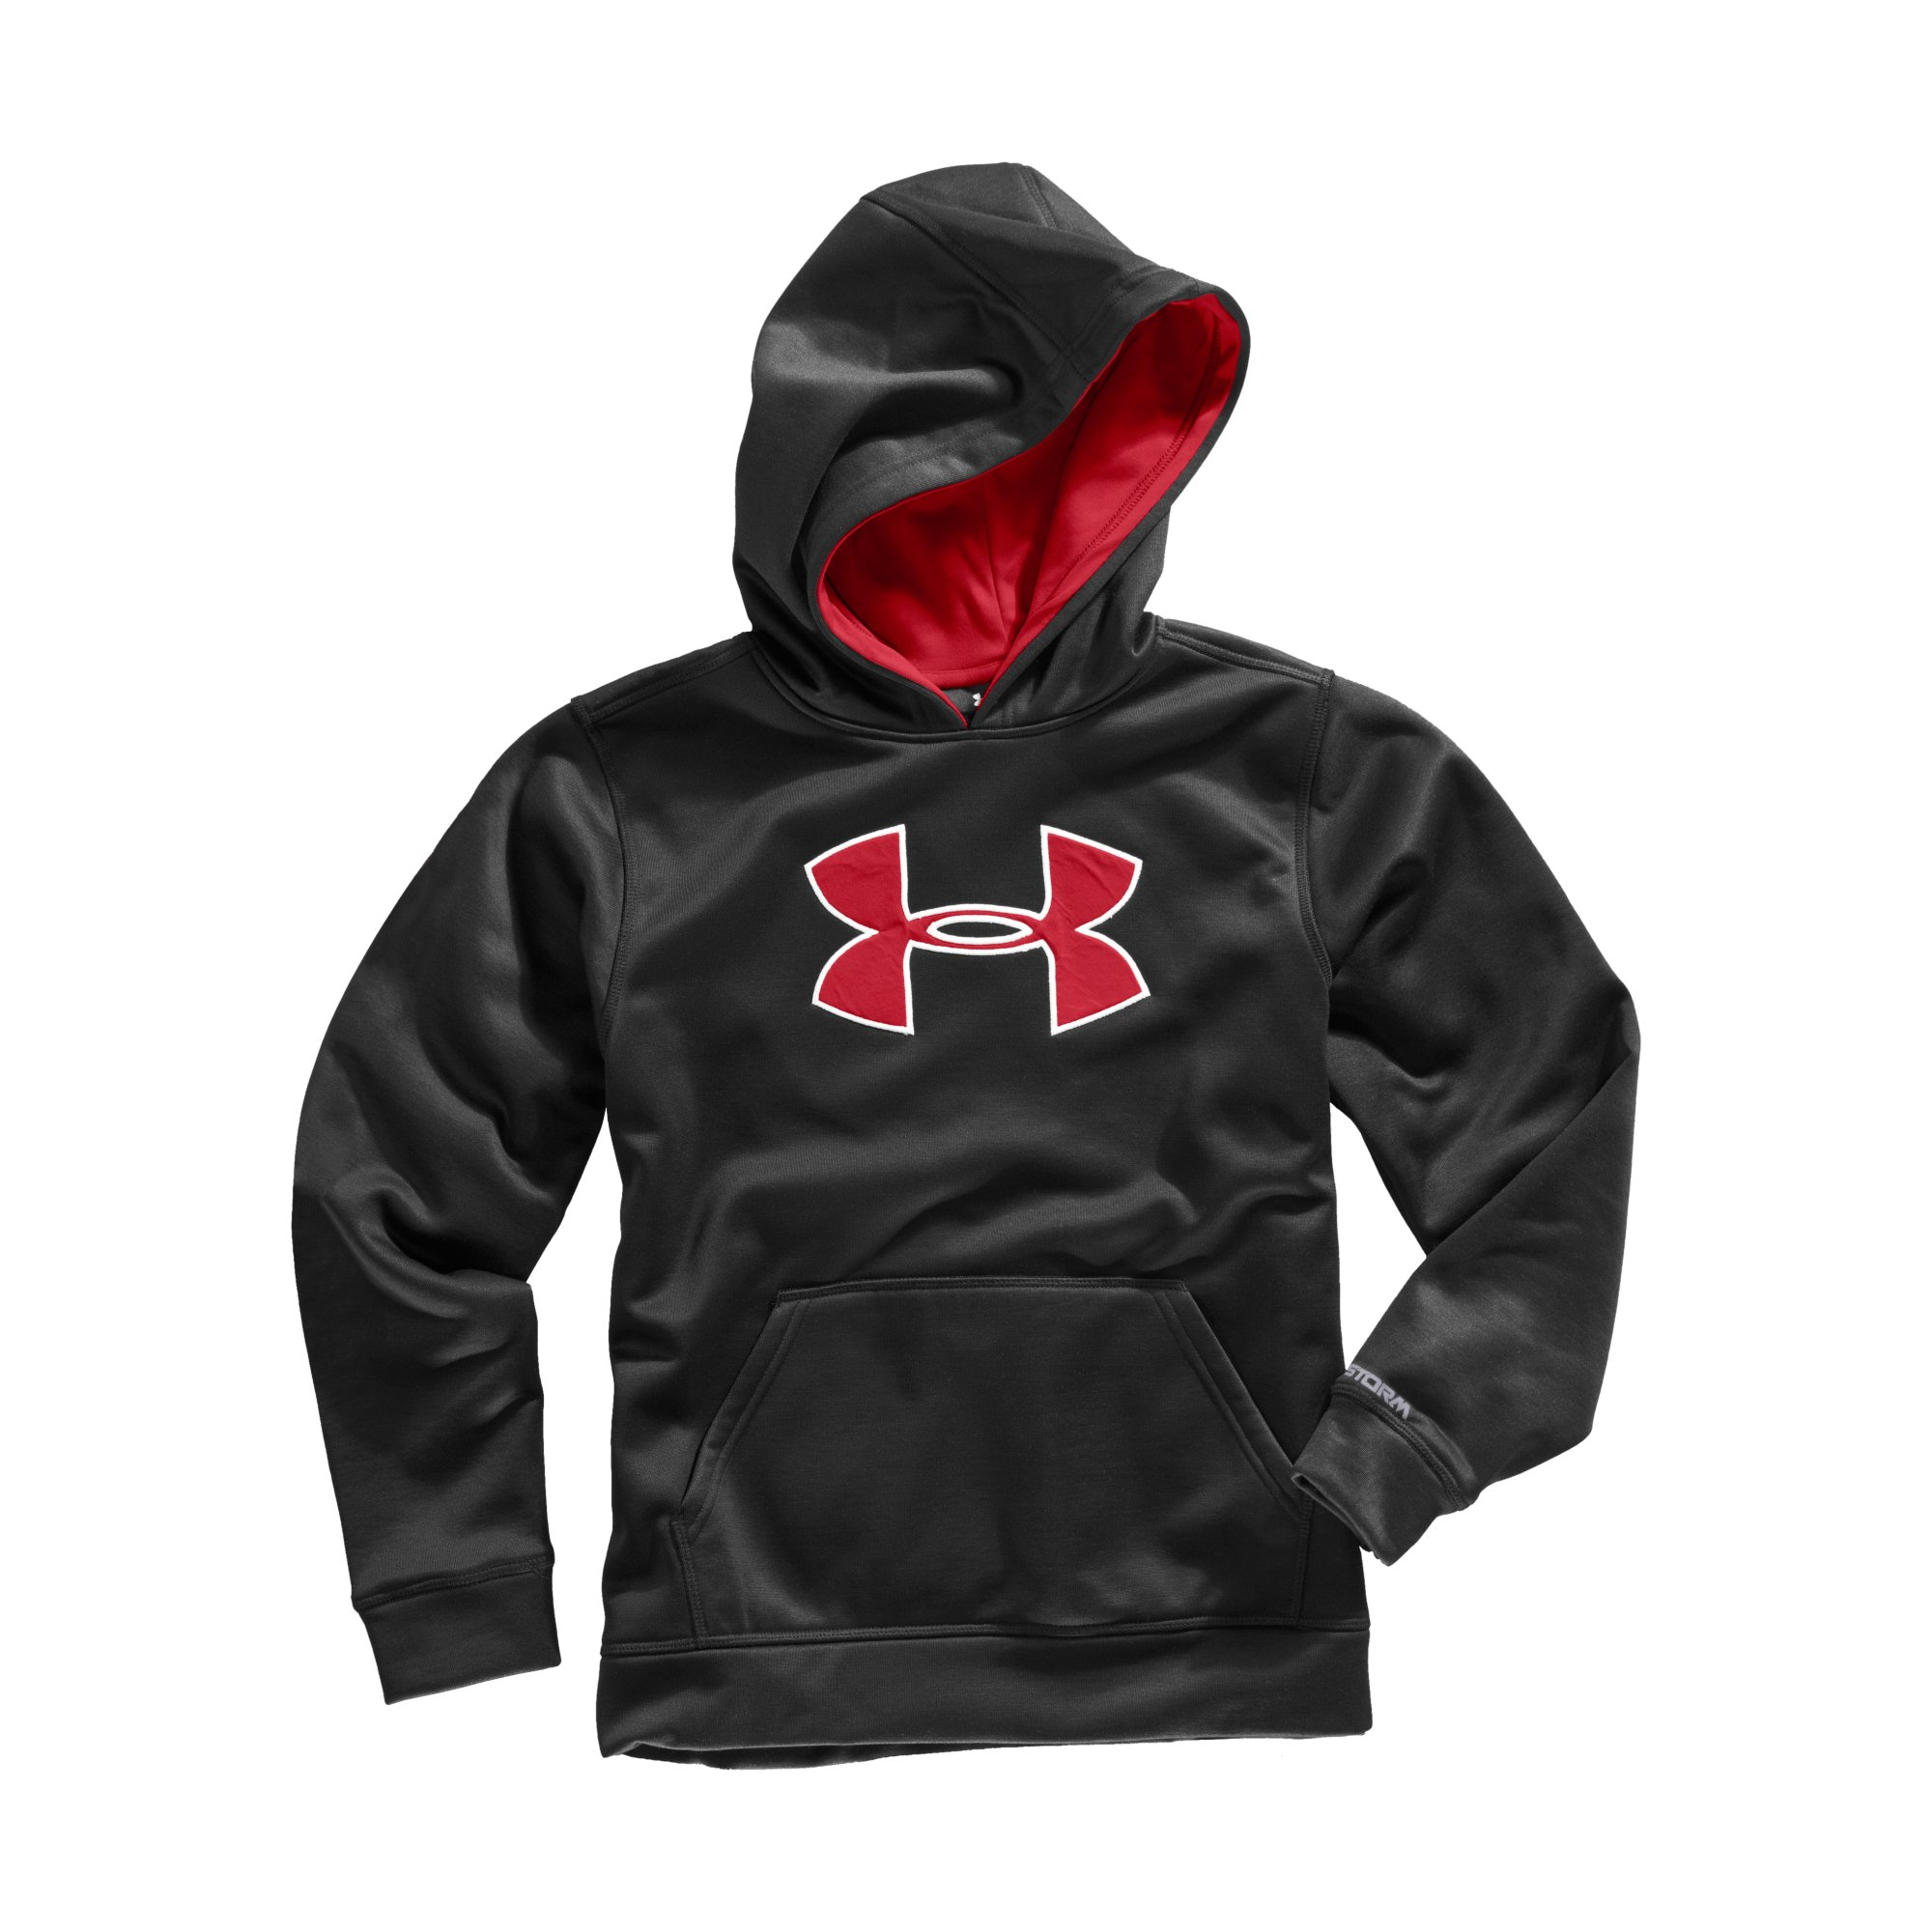 Under Armour Boys' Armour Fleece Storm Big Logo Pullover Hoodie